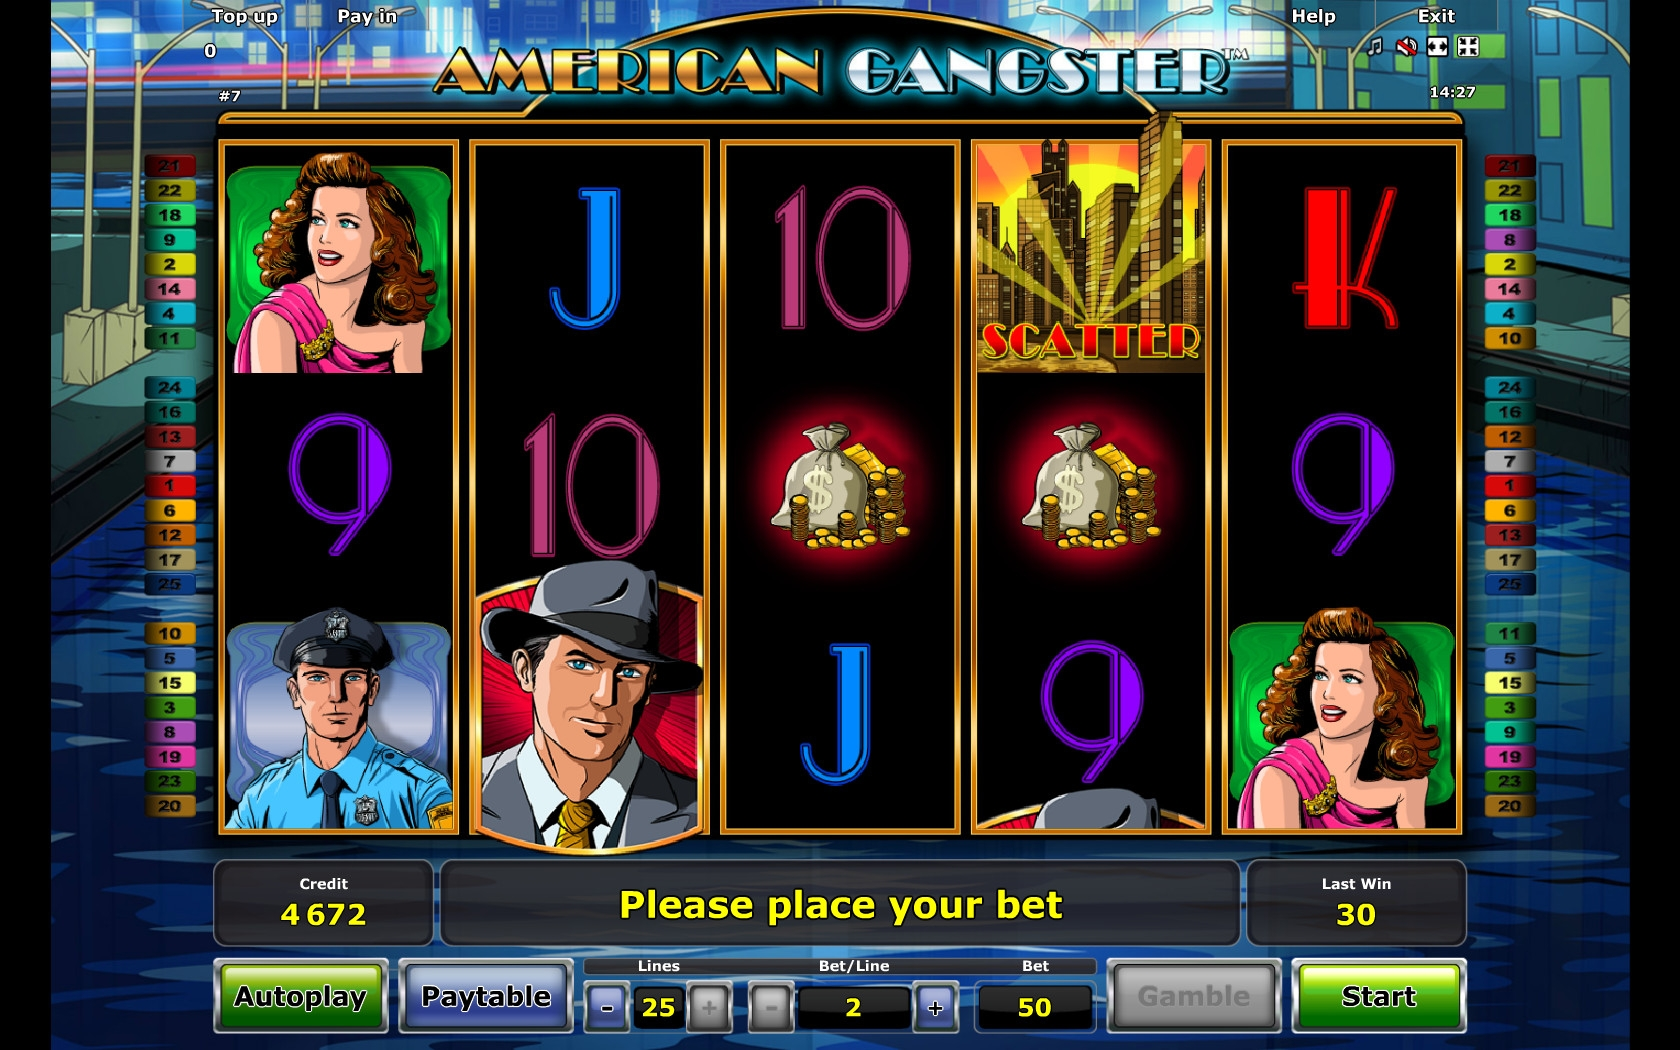 casino slots online quotes from american gangster